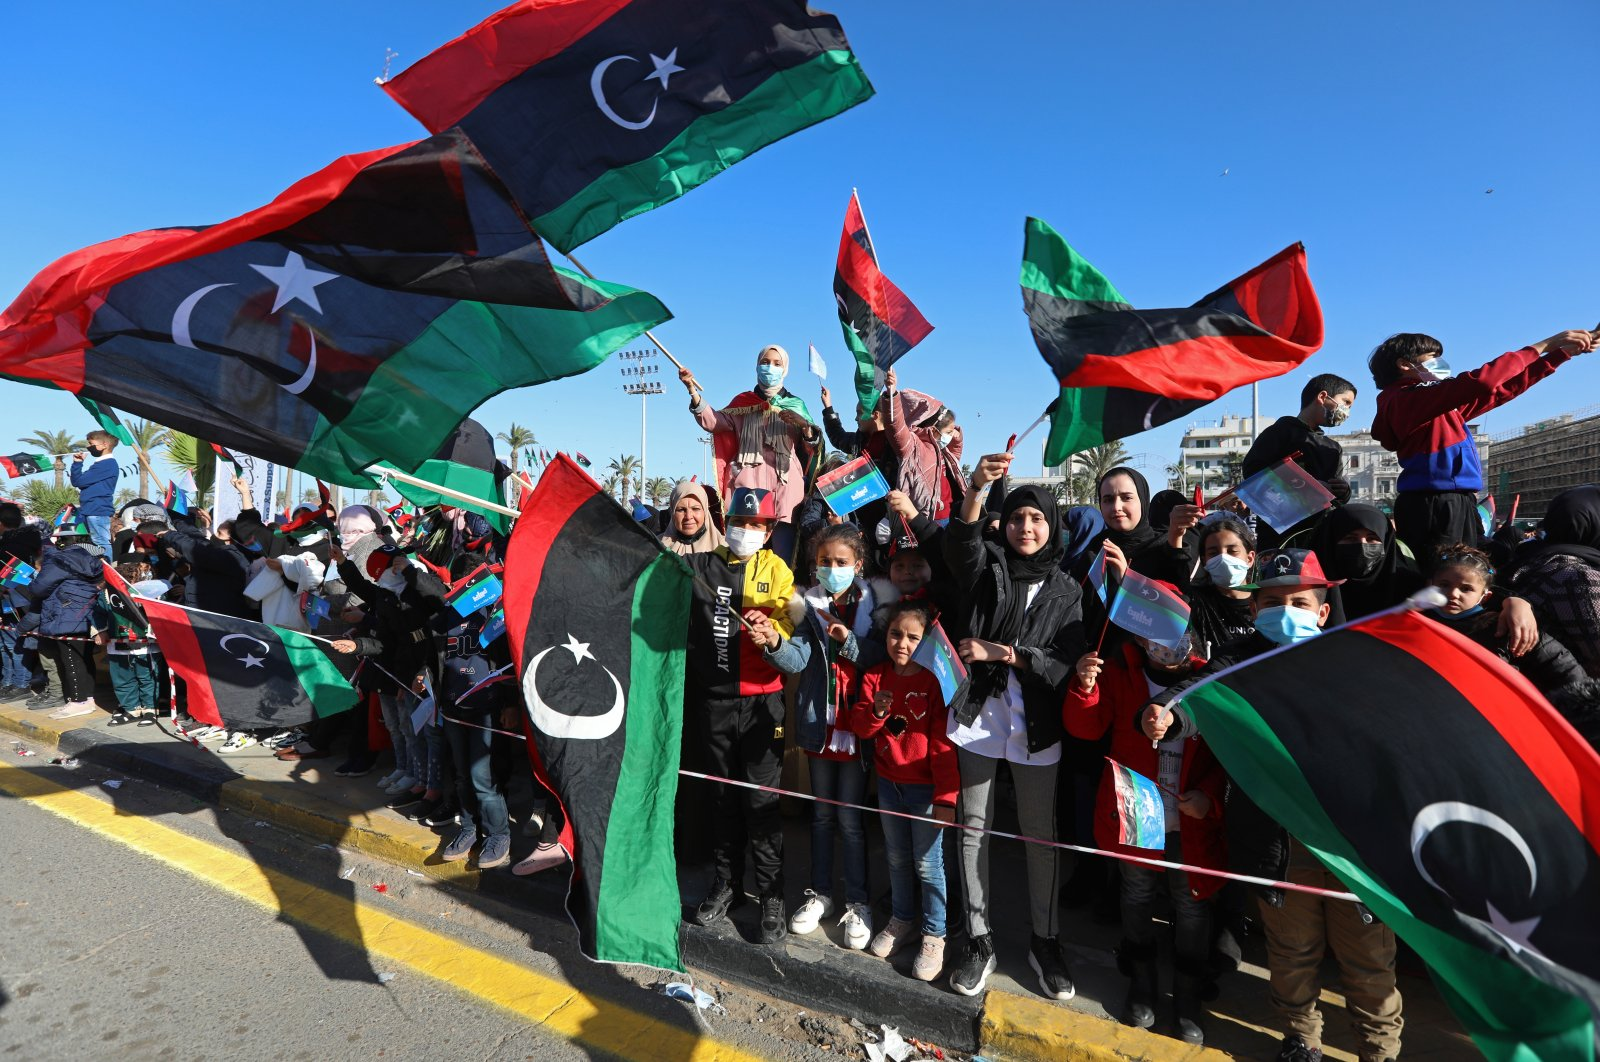 Under tight security, Libyans mark the 10th anniversary of their 2011 uprising that led to the overthrow and killing of longtime ruler Moammar Gadhafi in Martyrs Square, Tripoli, Libya, Feb. 17, 2021. (AP File Photo)